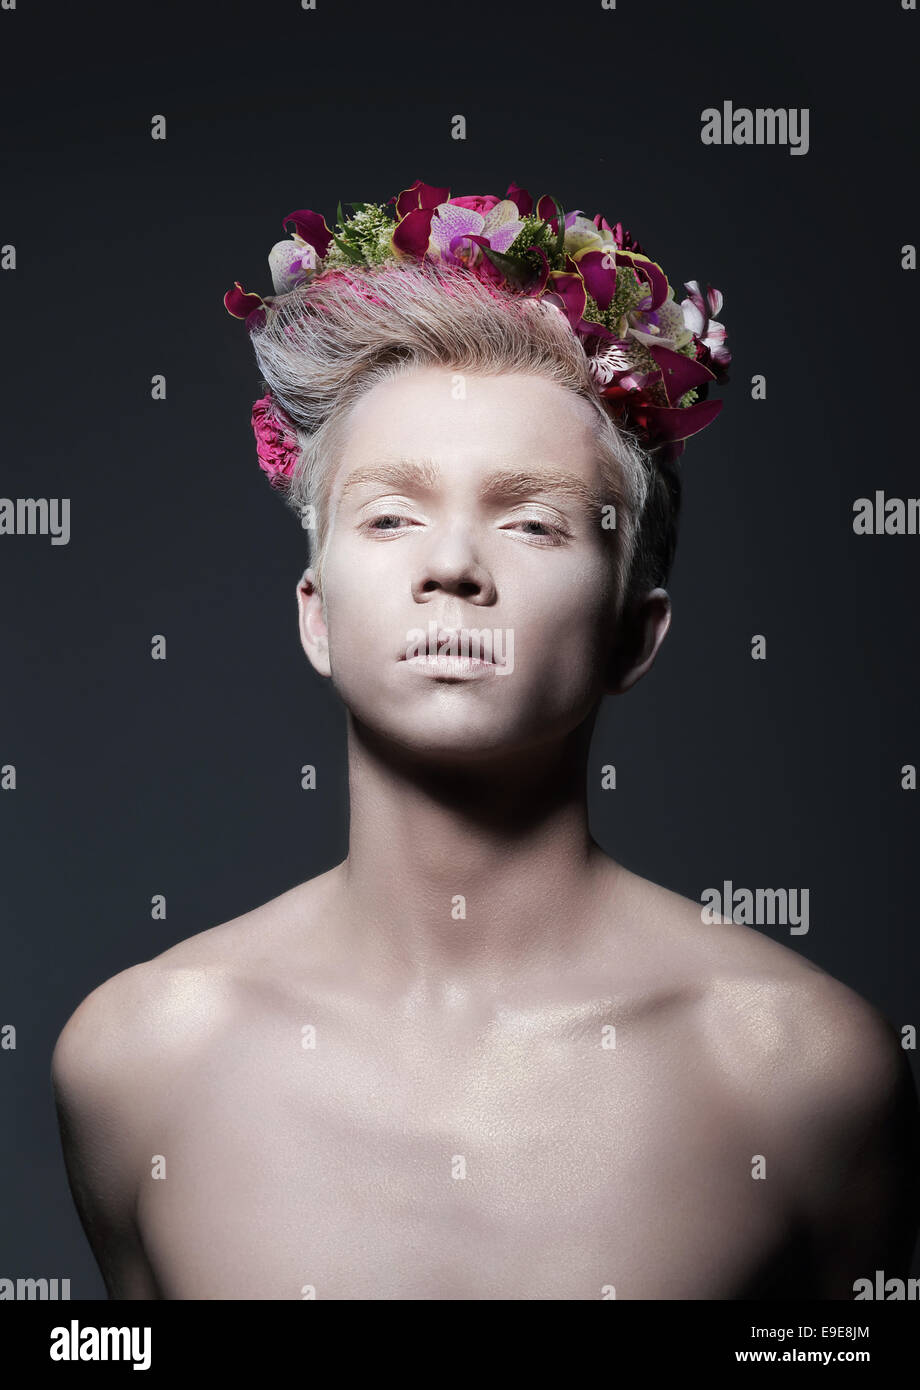 Beauty. Young Man with Wreath of Flowers over Gray - Stock Image